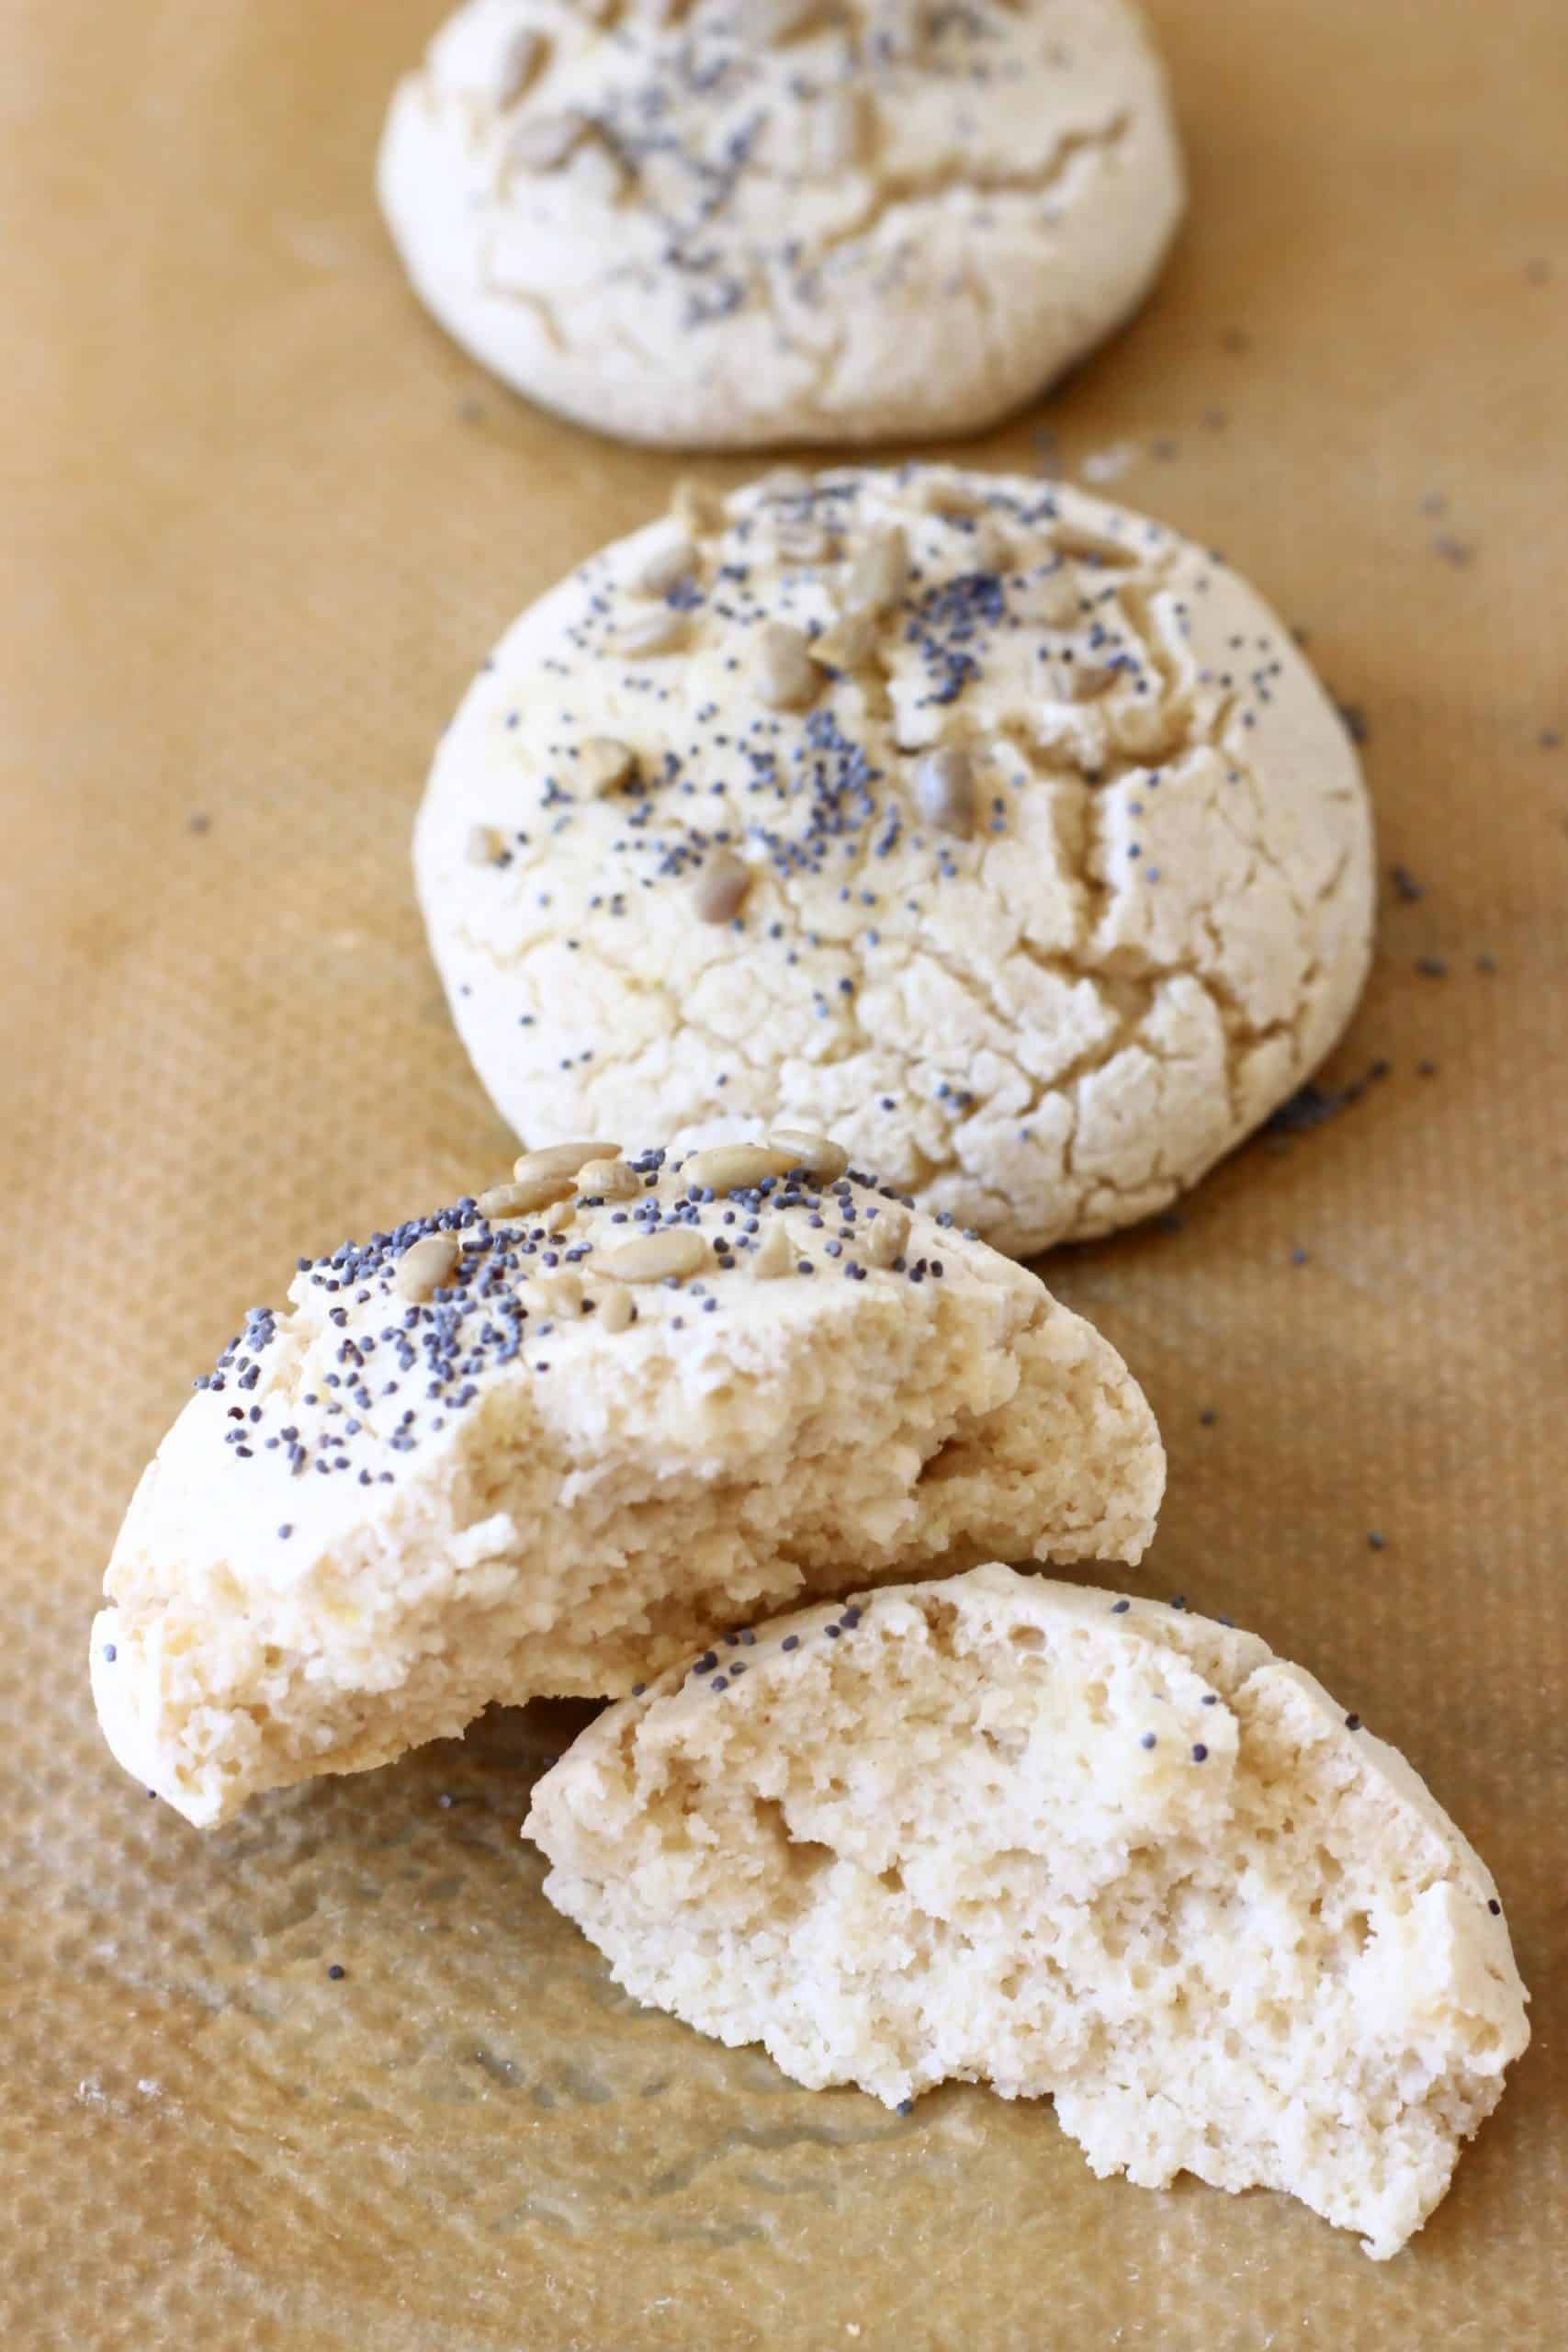 Three bread rolls topped with seeds, one torn in half